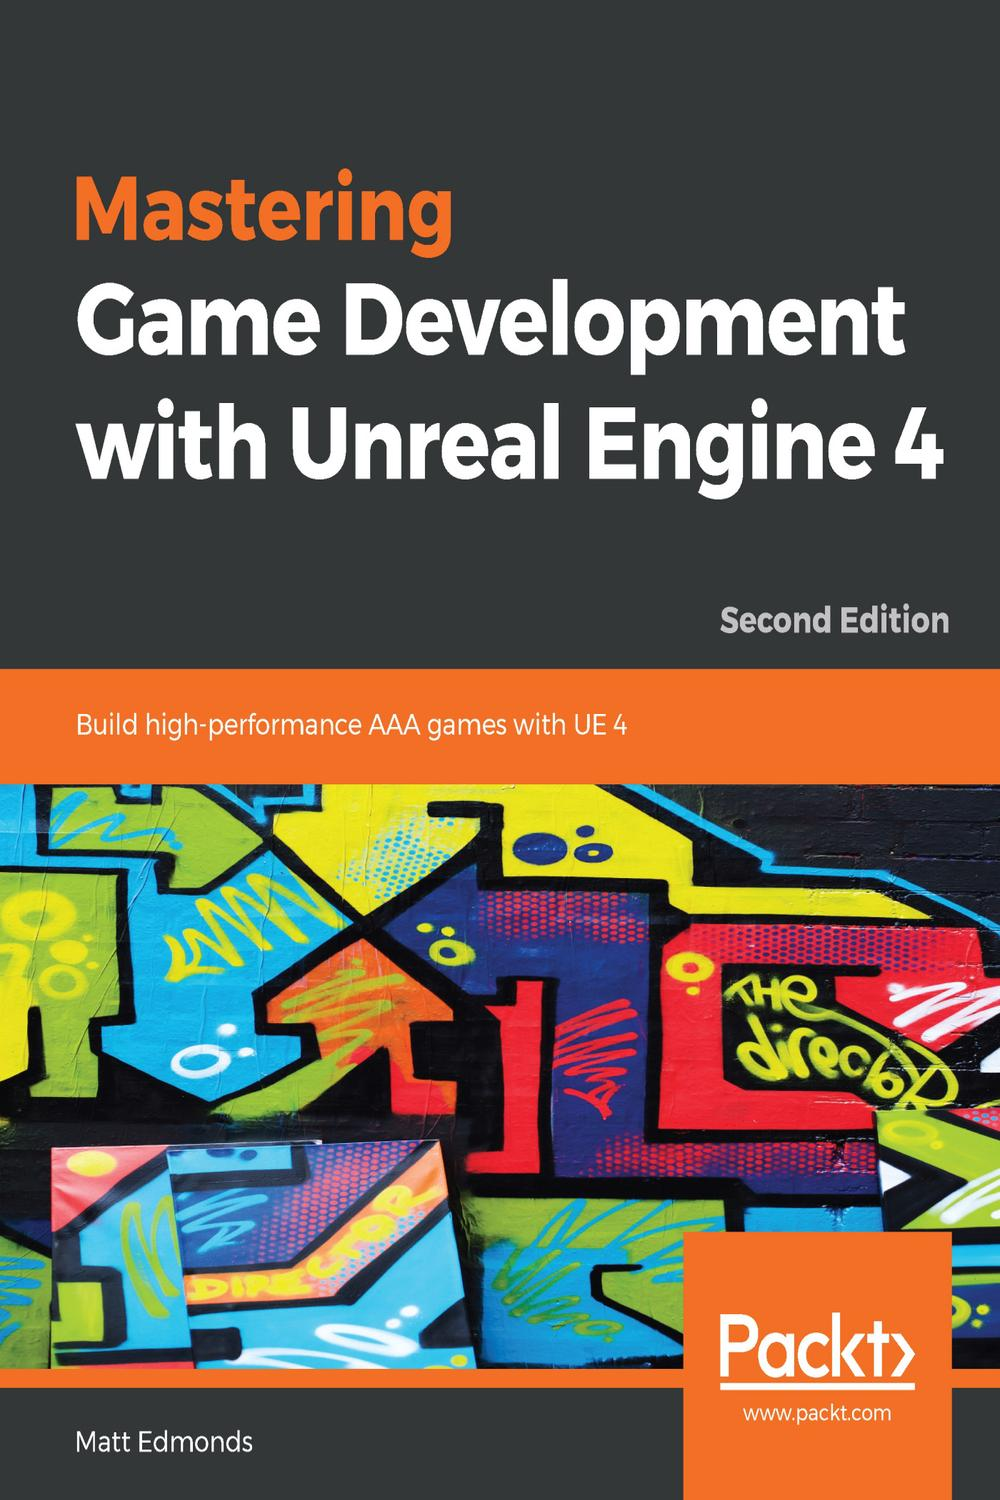 Mastering Game Development with Unreal Engine 4 by Matt